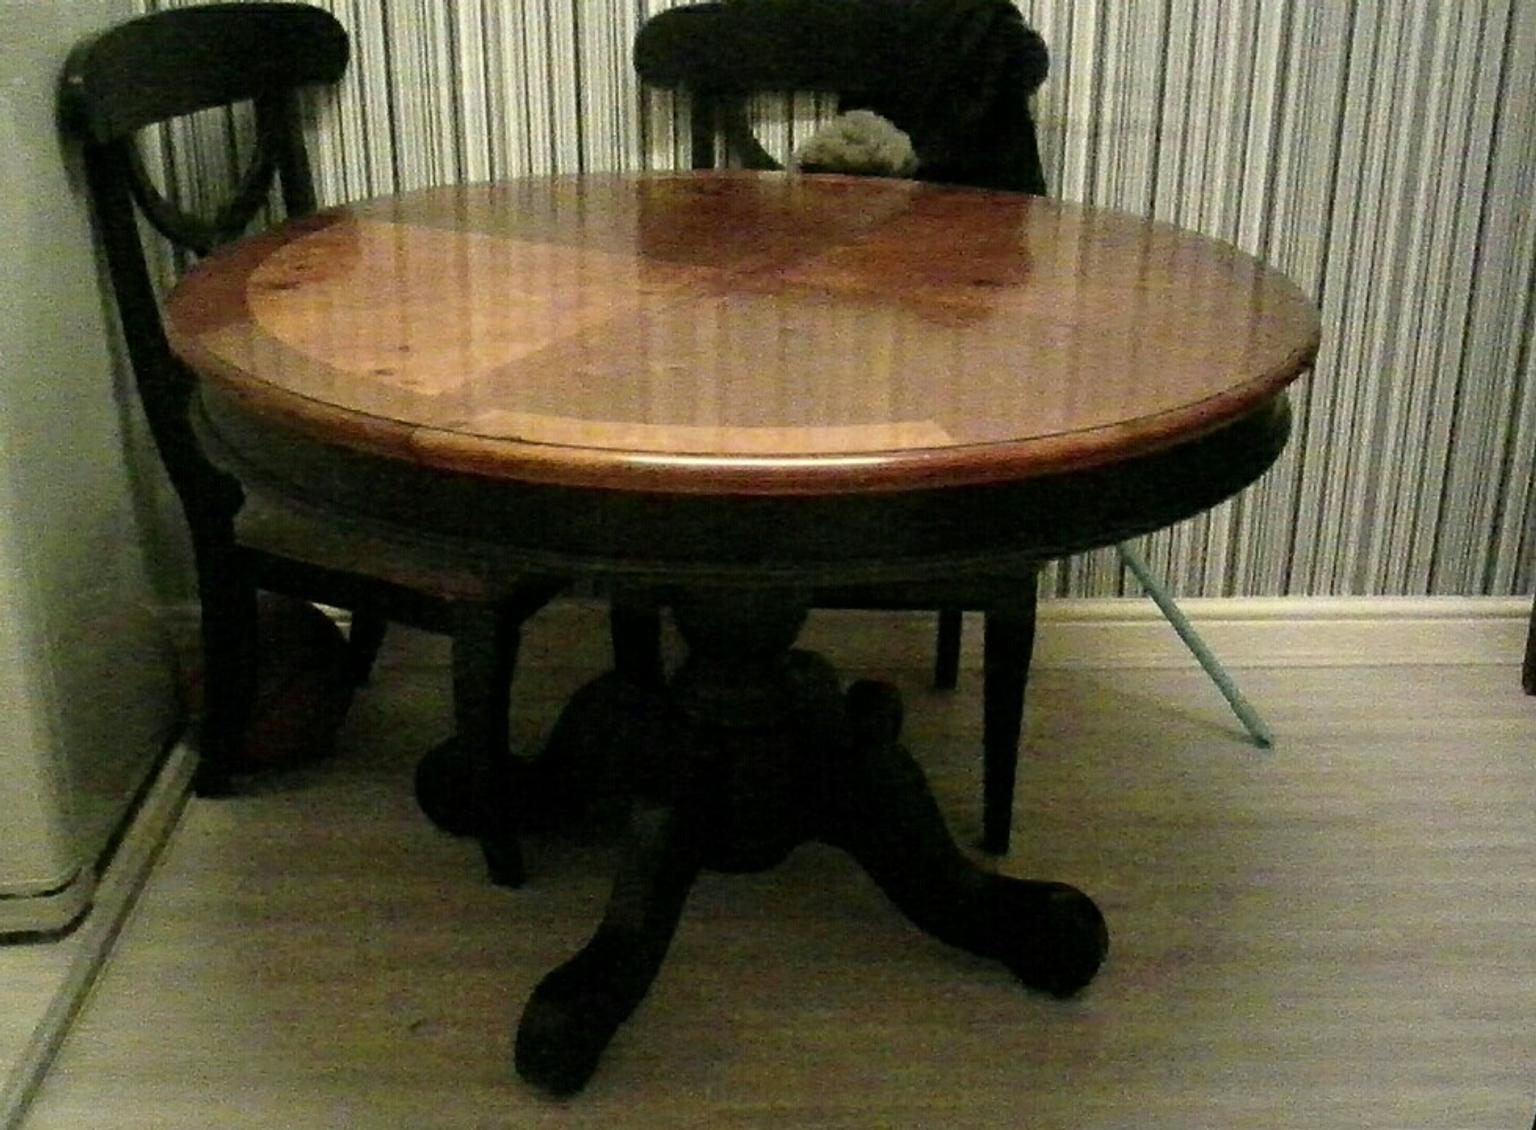 Used Dining table and chairs in B26 Birmingham for 163 9000  : aspectwidth1200ampaspectheight630 from en.shpock.com size 1200 x 720 jpeg 125kB